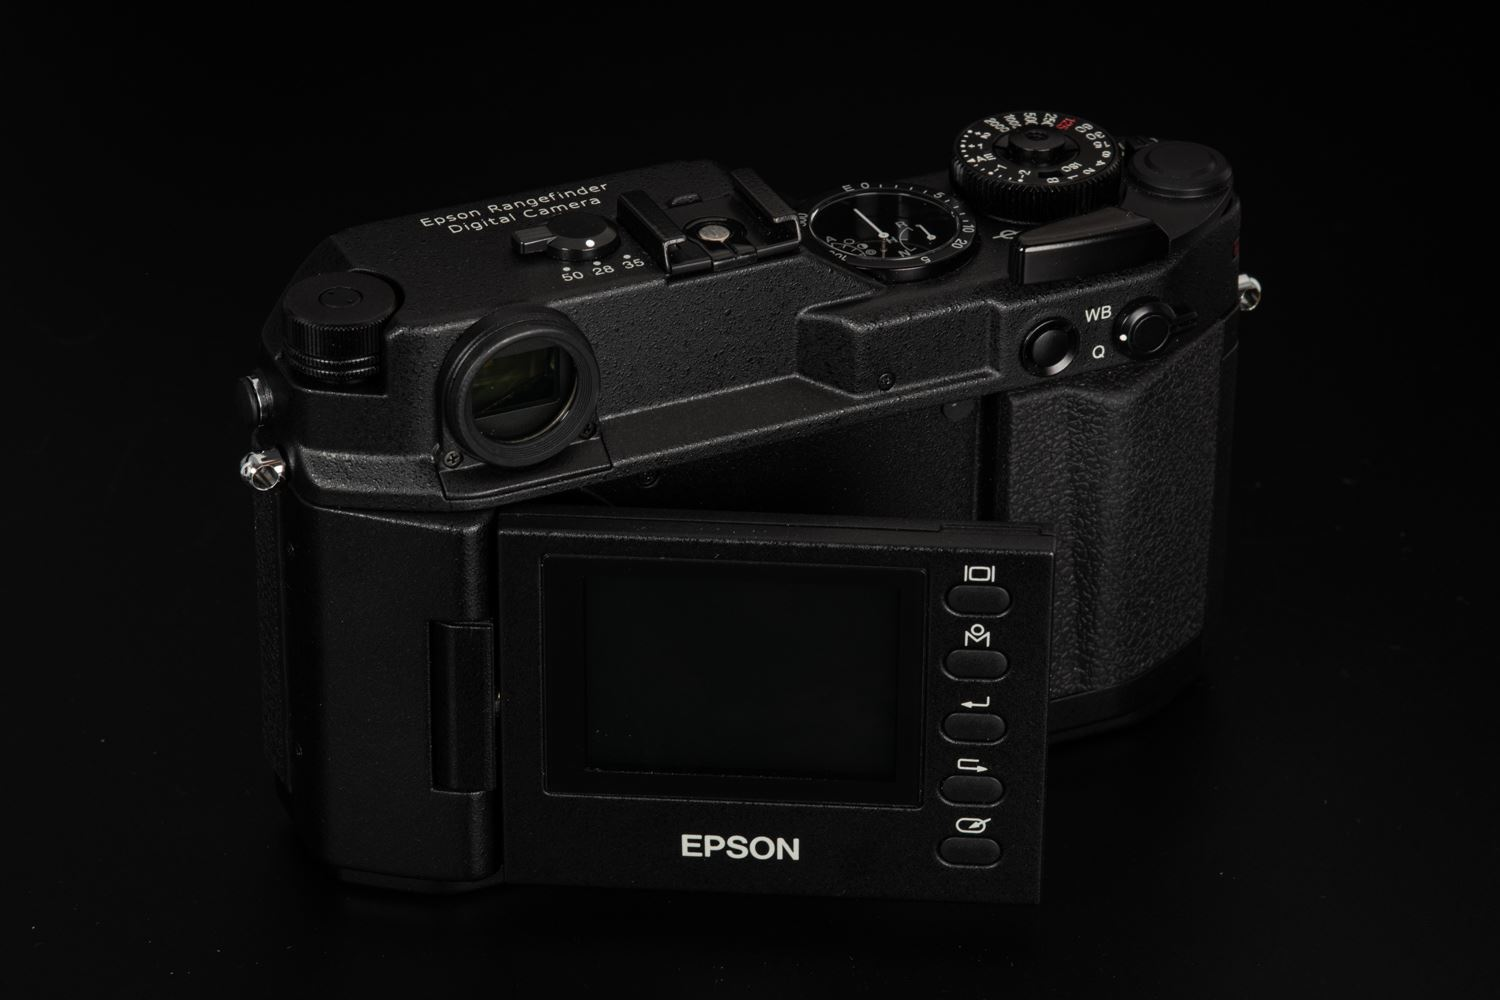 Picture of Epson Rangefinder Digital Camera R-D1S pre-production version